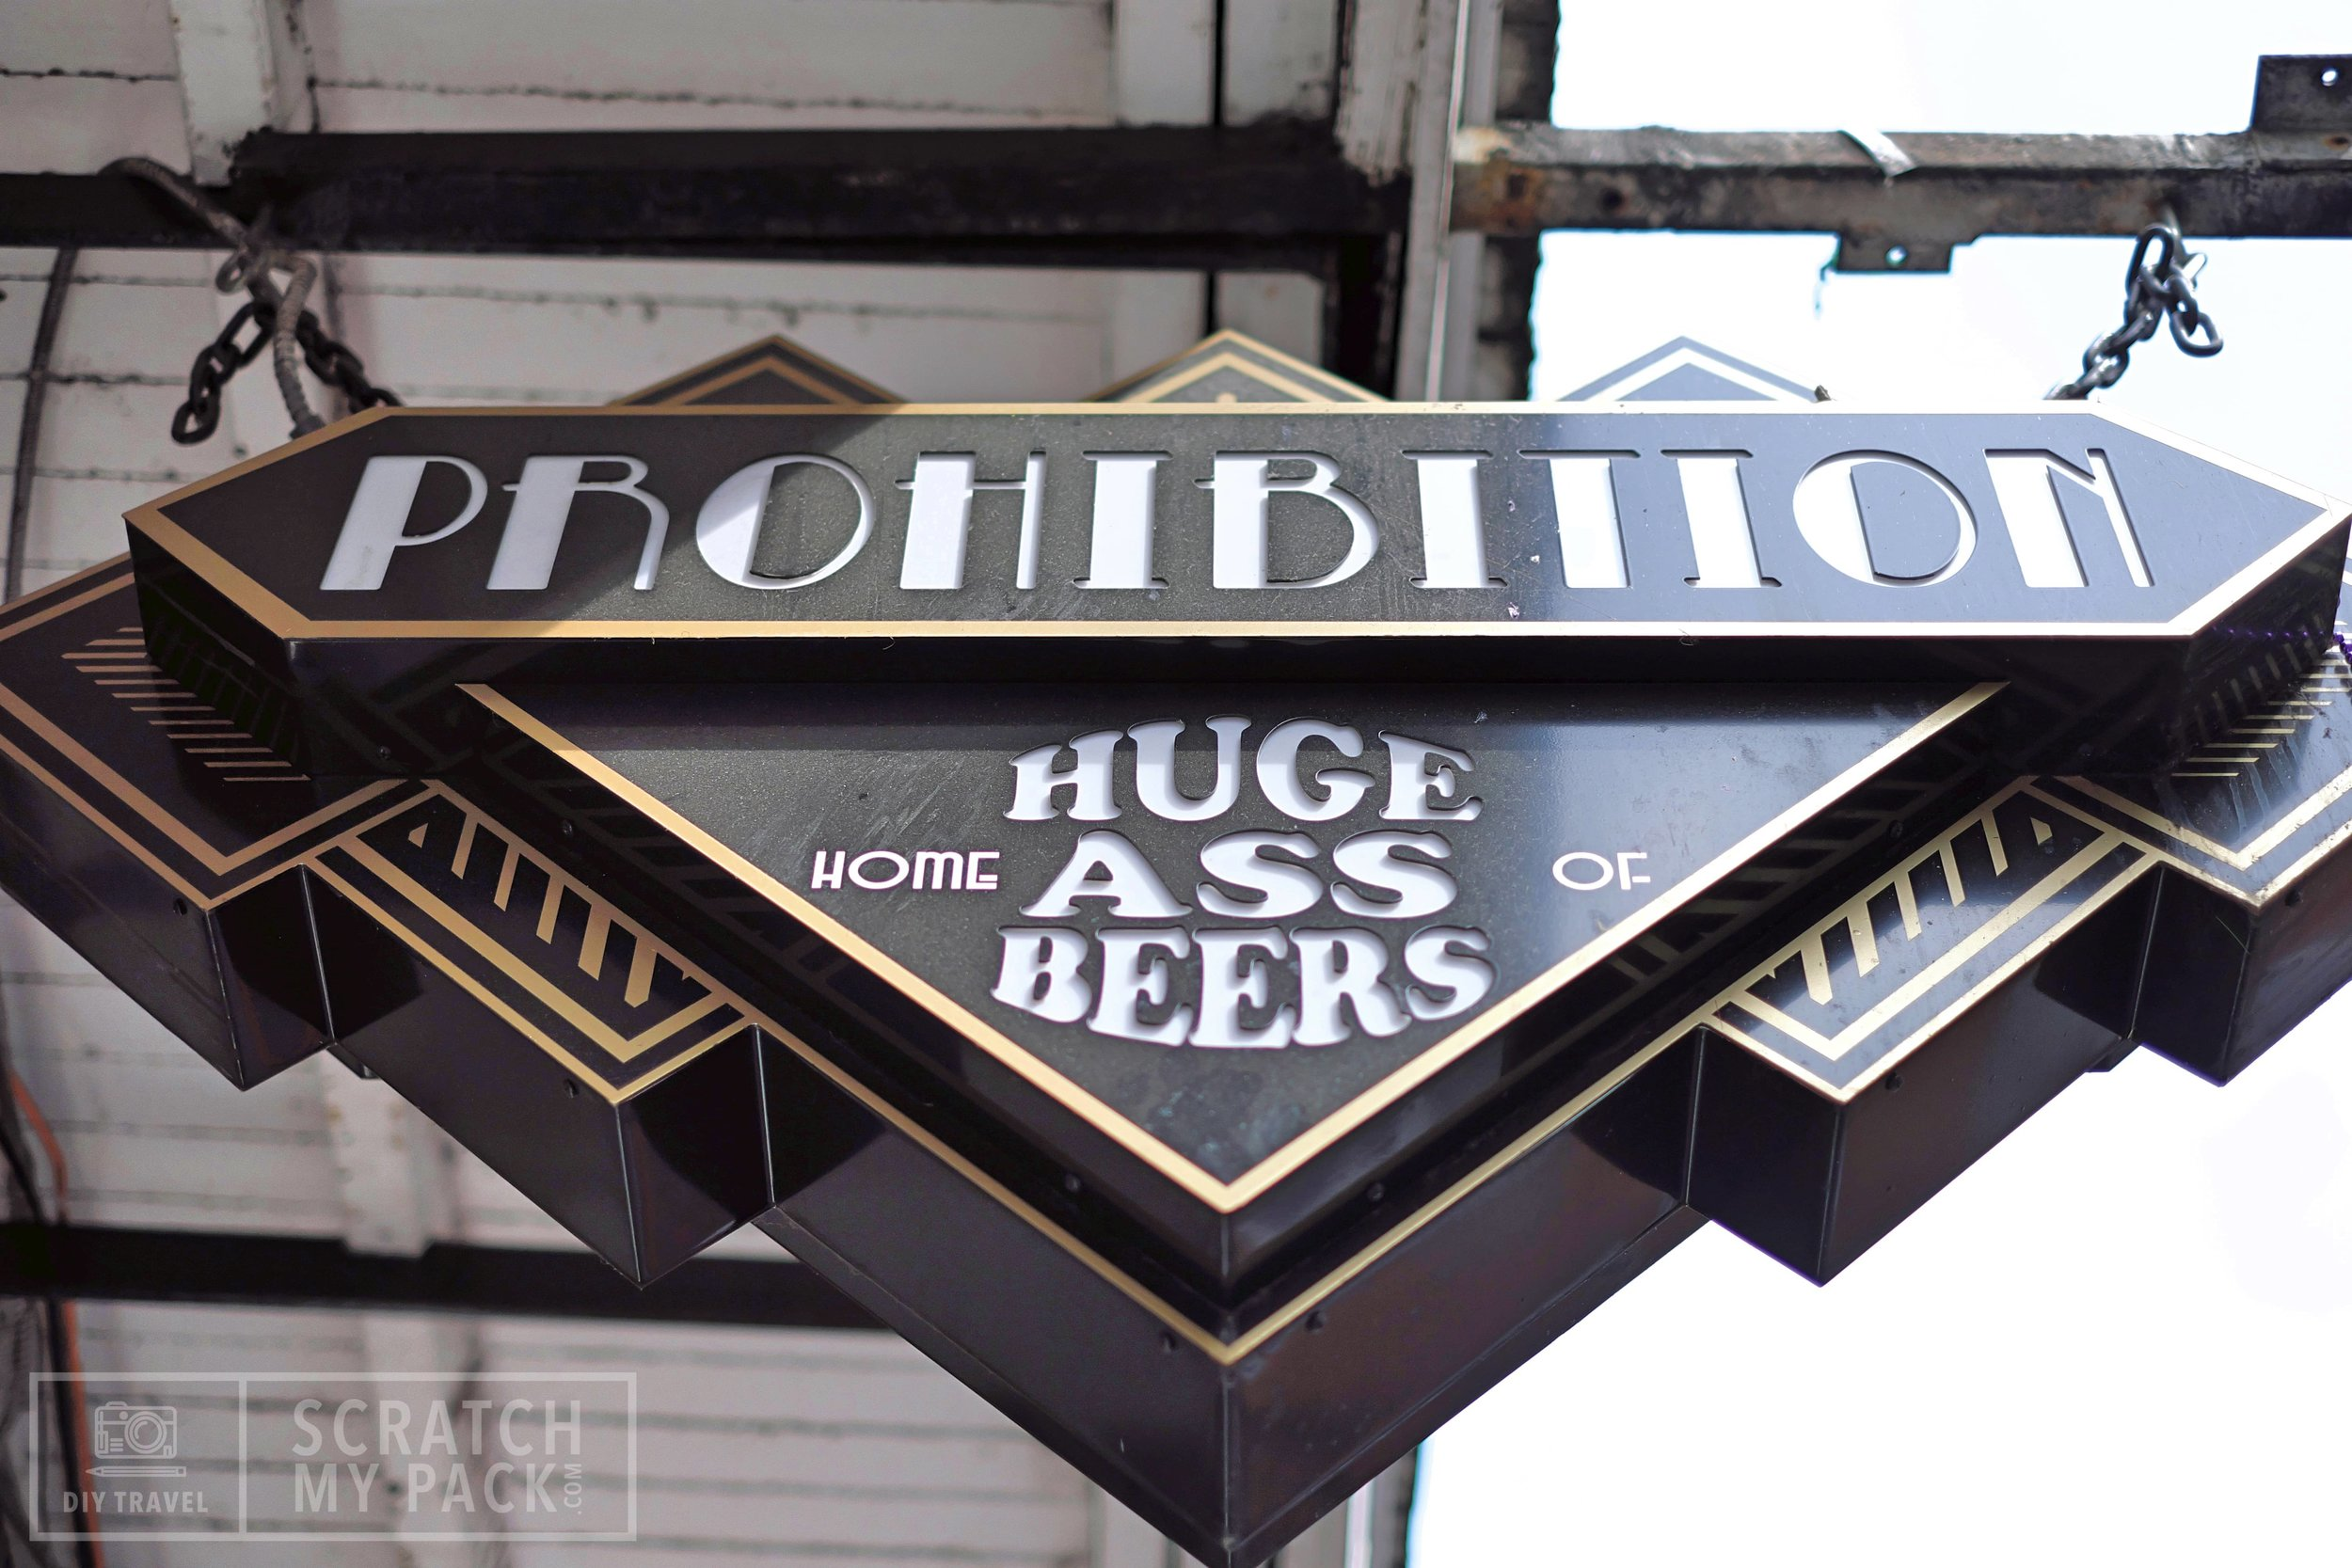 """Huge Ass Beer  - """"You can't visit Bourbon Street without having a delicious, thirst quenching Huge Ass Beer. As the biggest, best, tastiest beer in New Orleans, it's easy to see why Huge Ass Beers has become iconic - it's an experience all in its own.""""  Check it out  here !"""